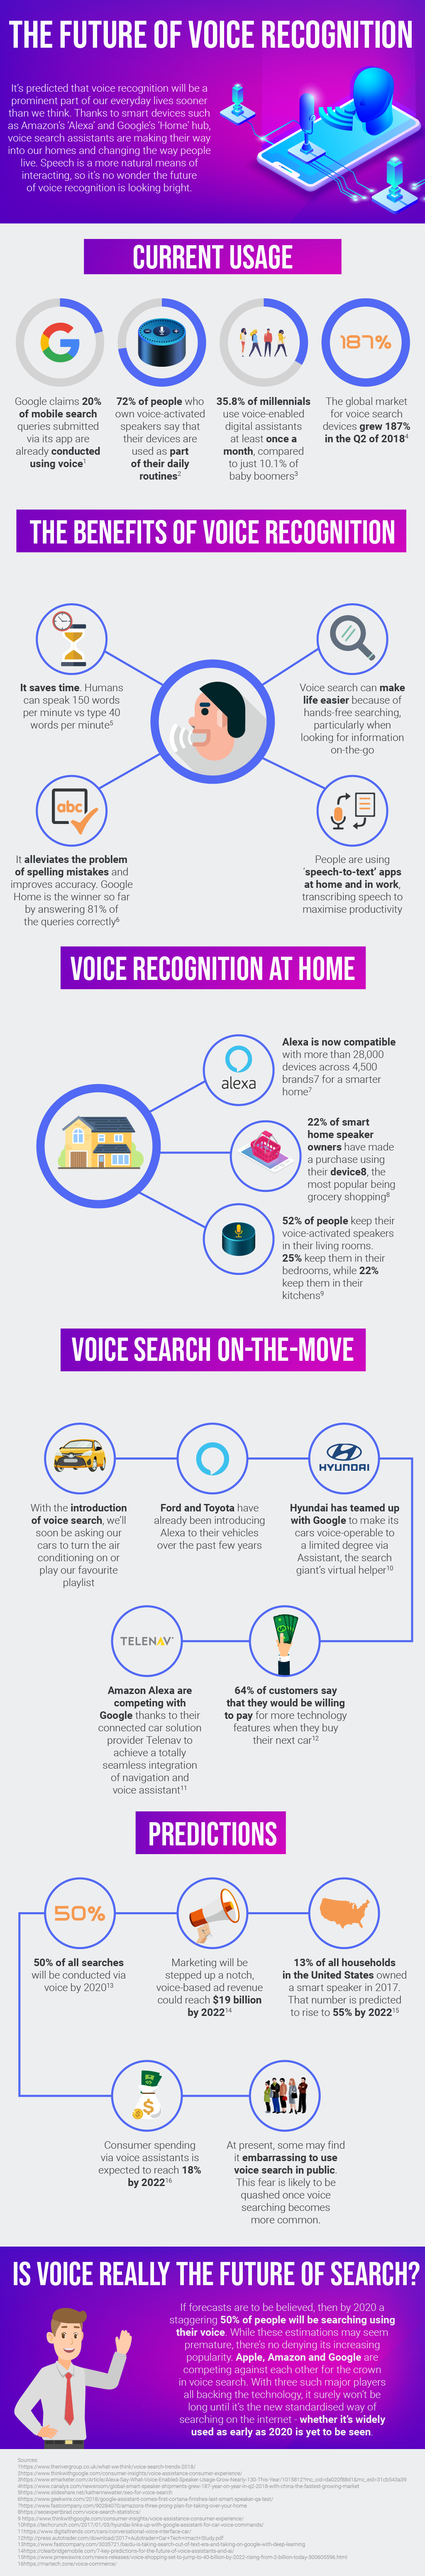 The Future of Voice Recognition [infographic]